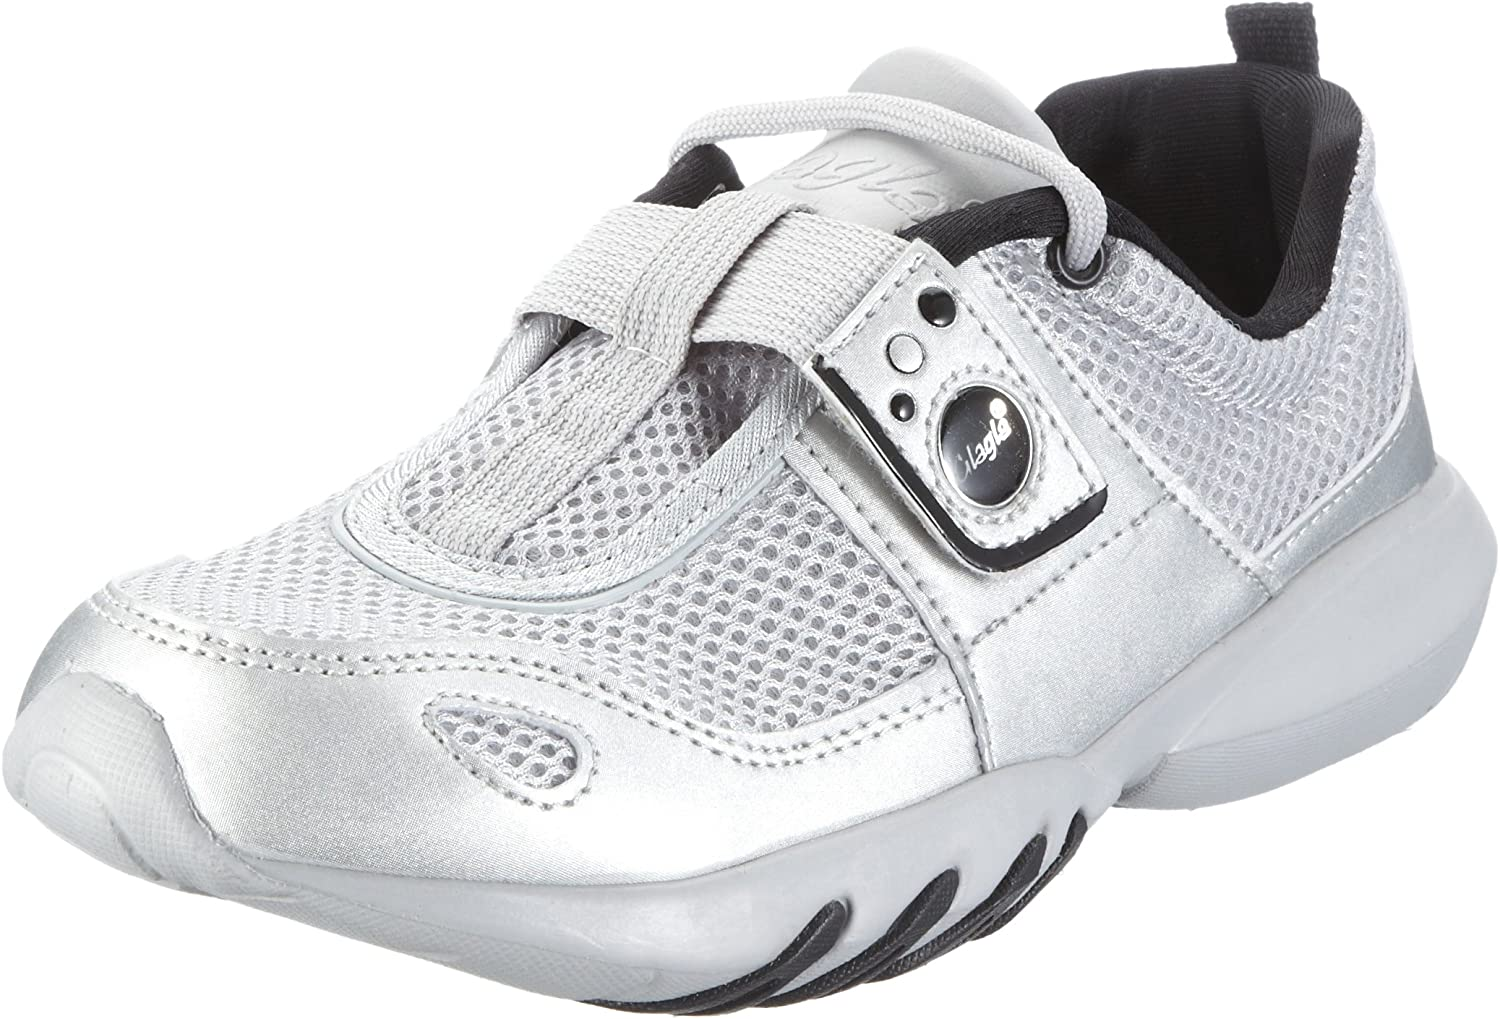 Glagla Unisex Adults' Classic Multisport Outdoor shoes